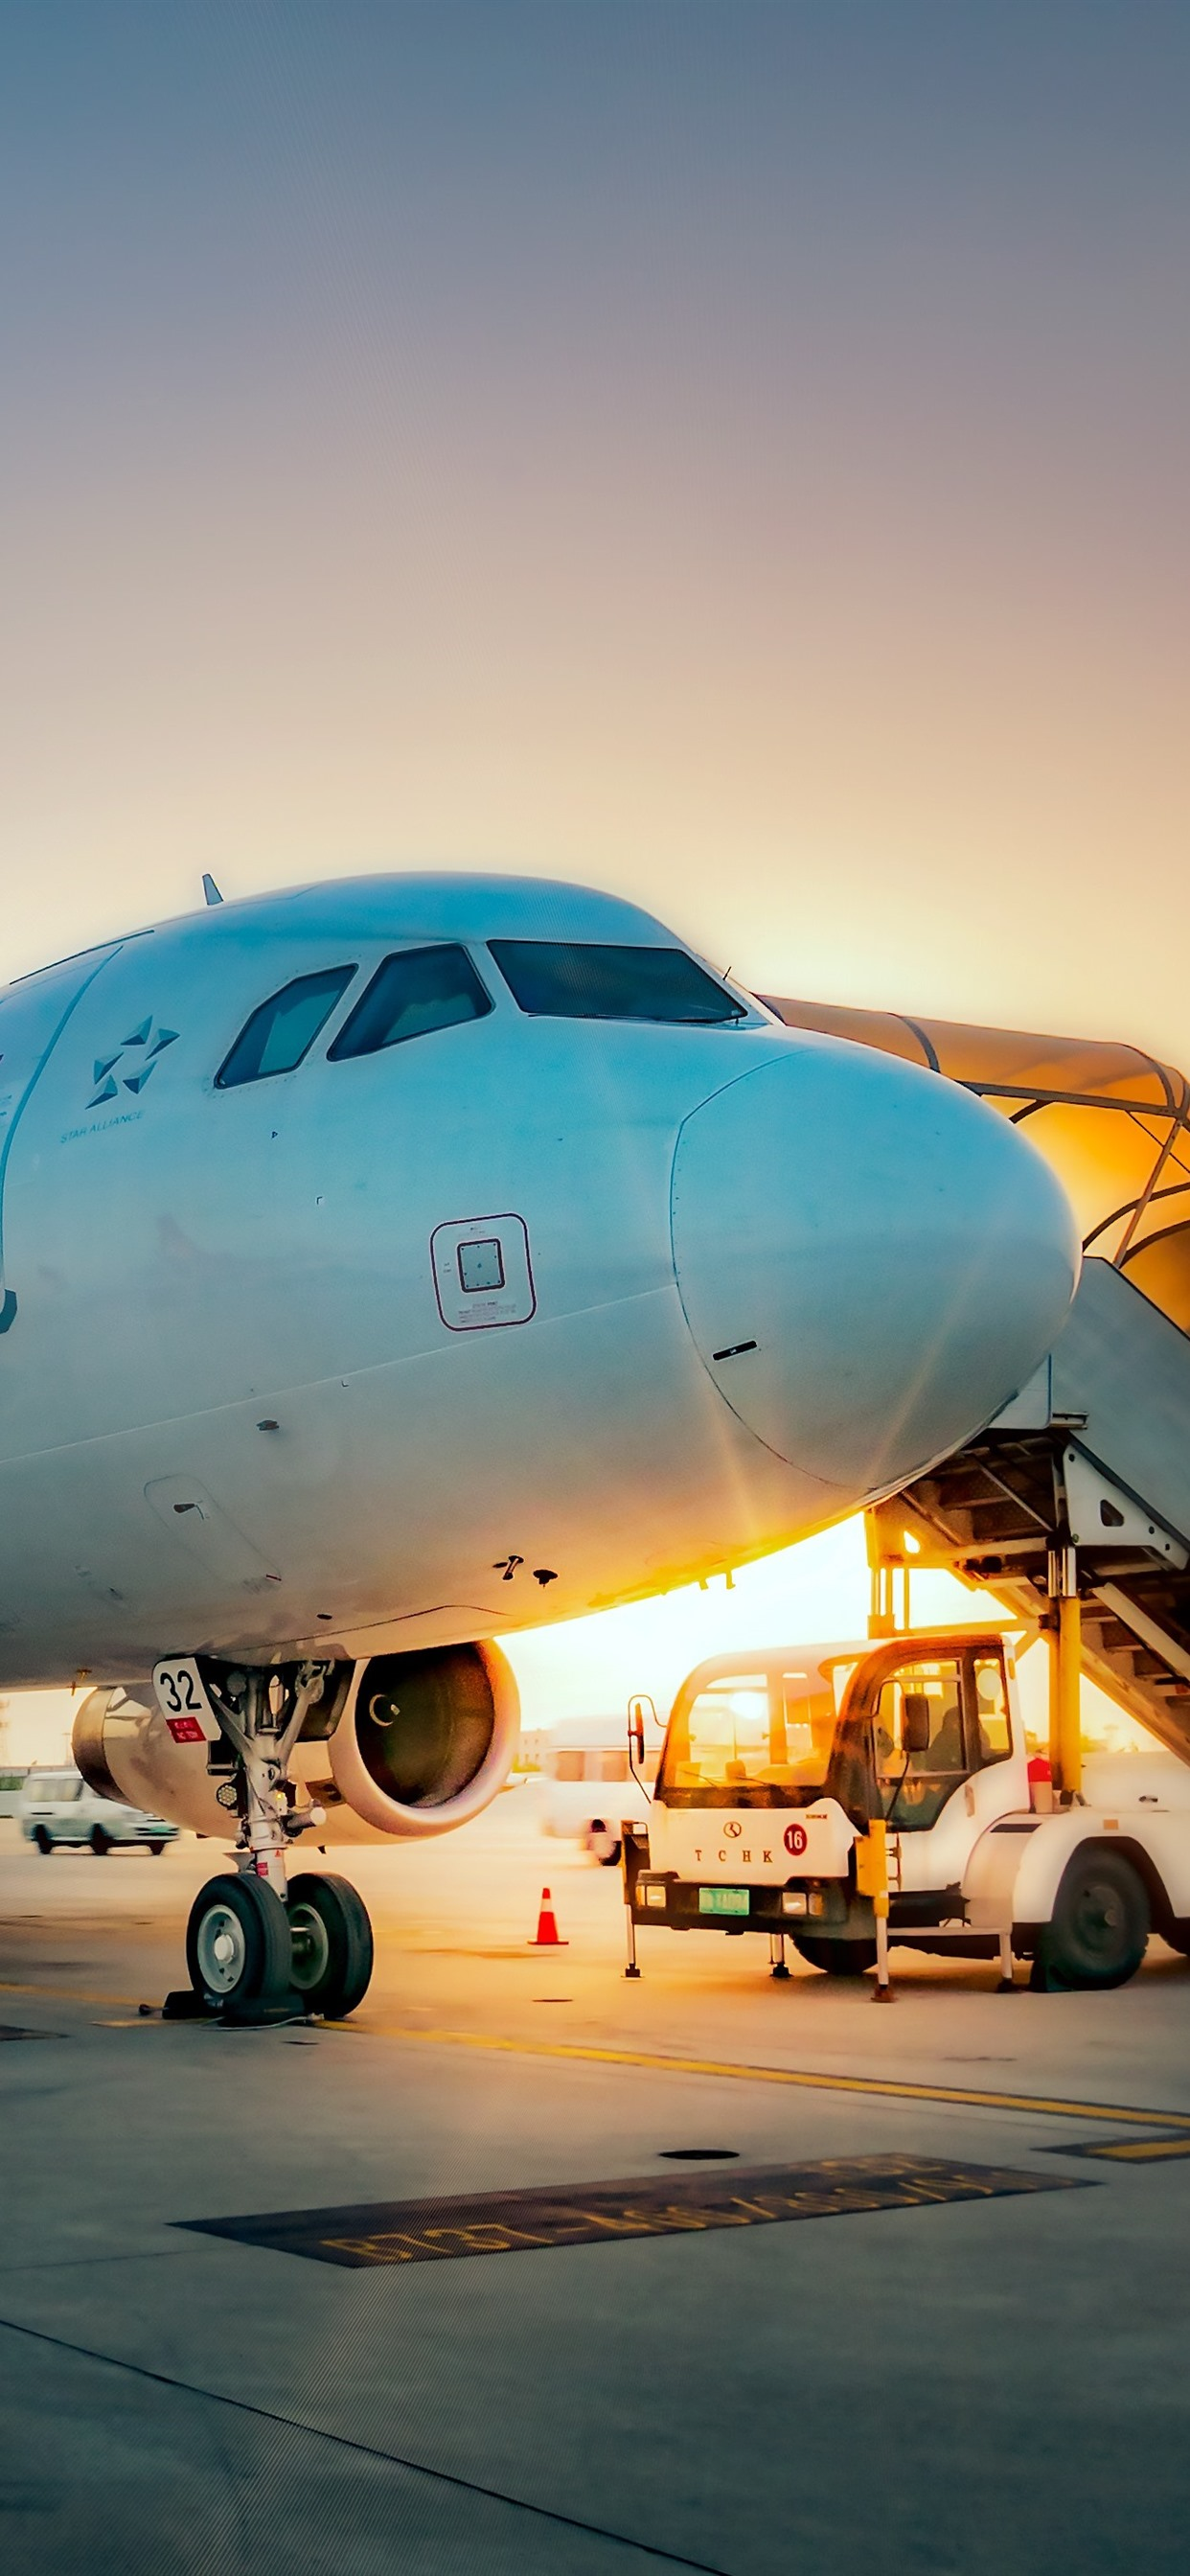 Airport Plane Sunrise 1242x2688 Iphone 11 Pro Xs Max Wallpaper Background Picture Image